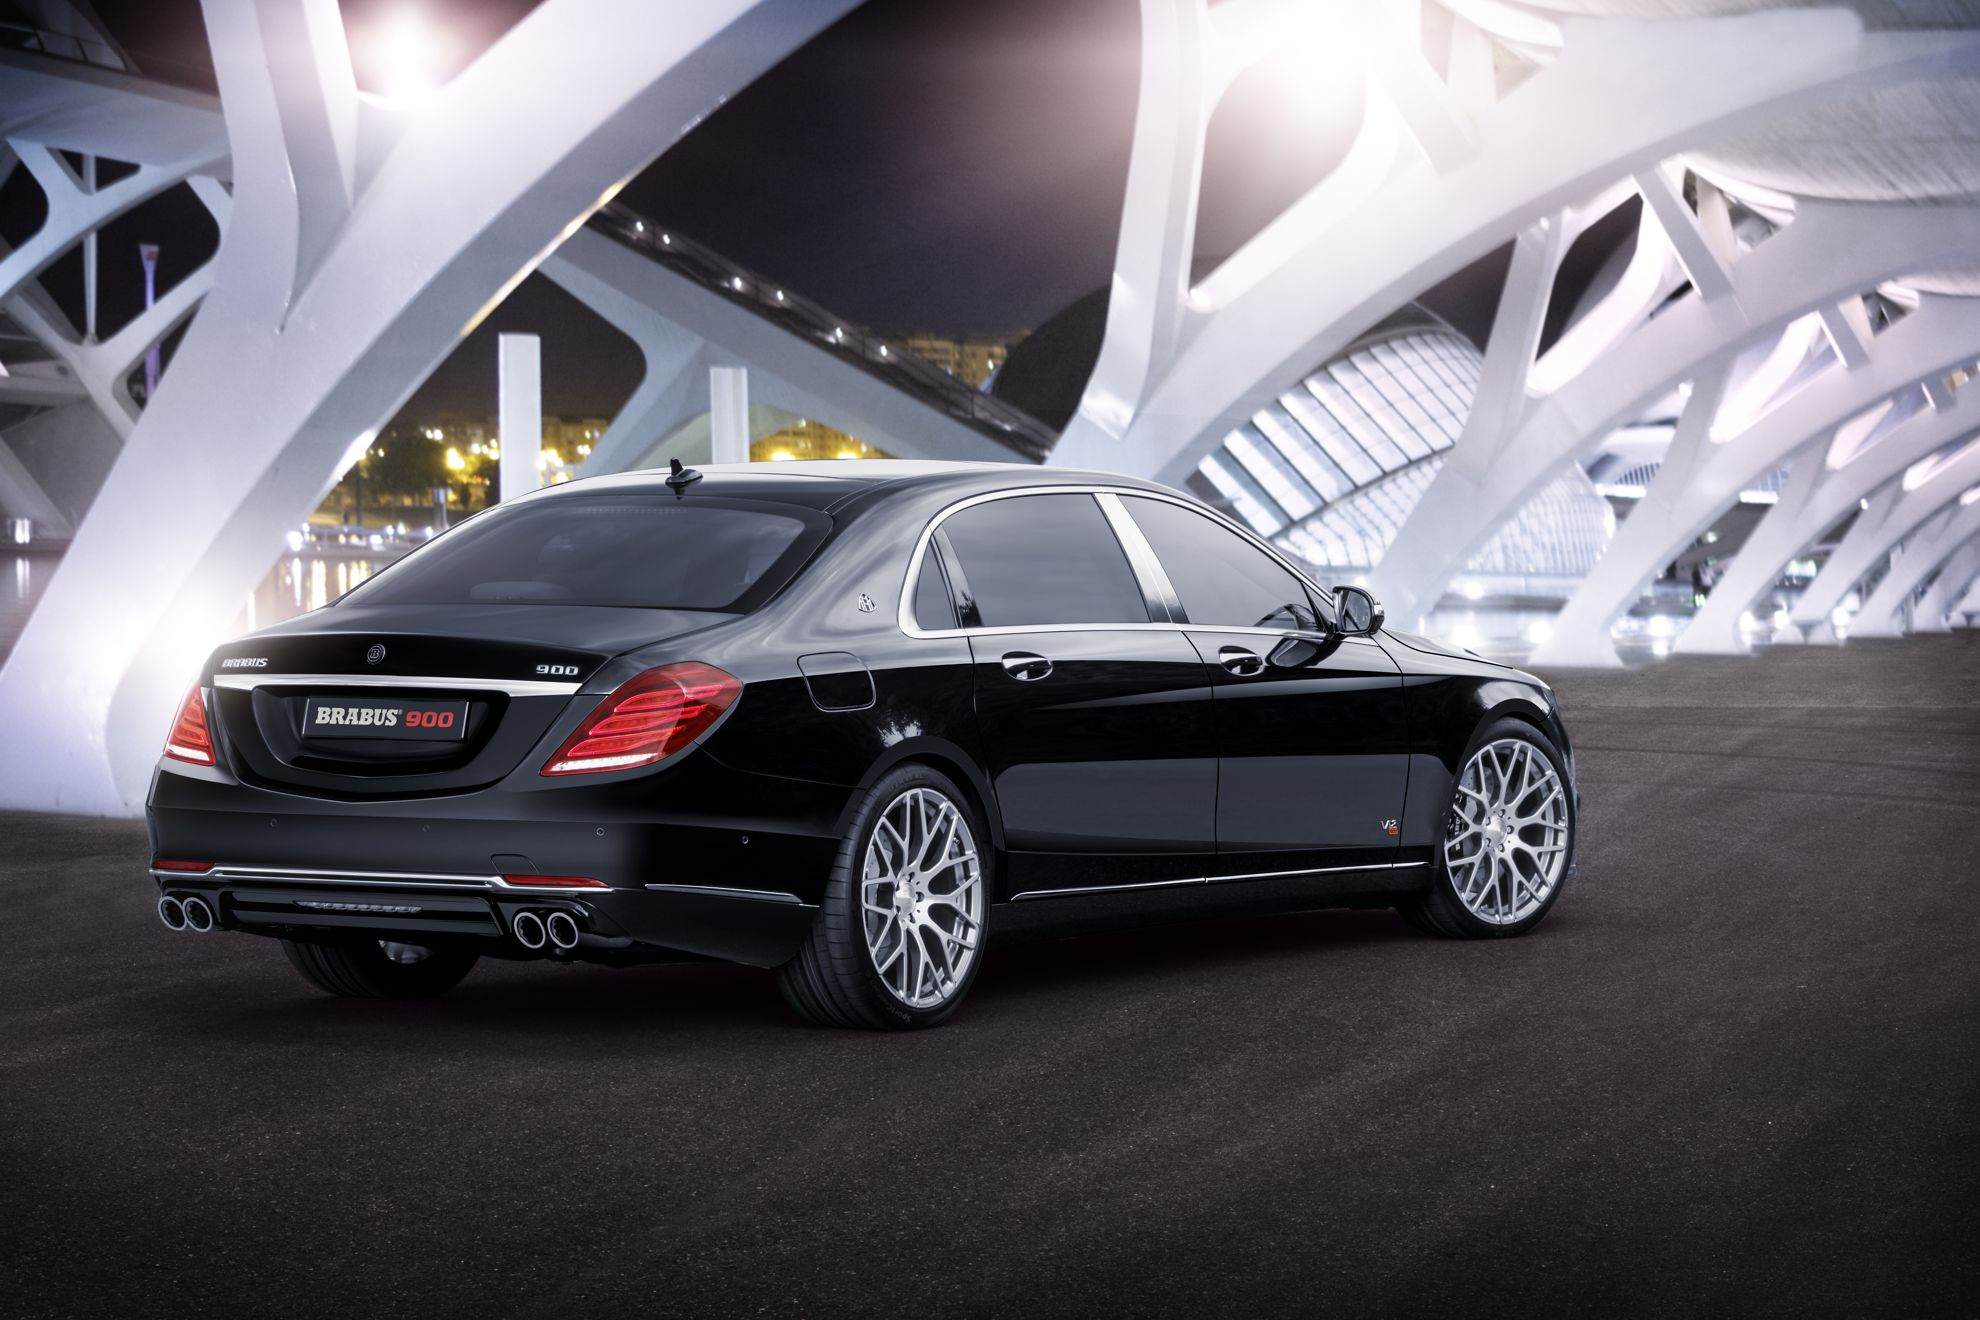 BRABUS refines the new MercedesMaybach